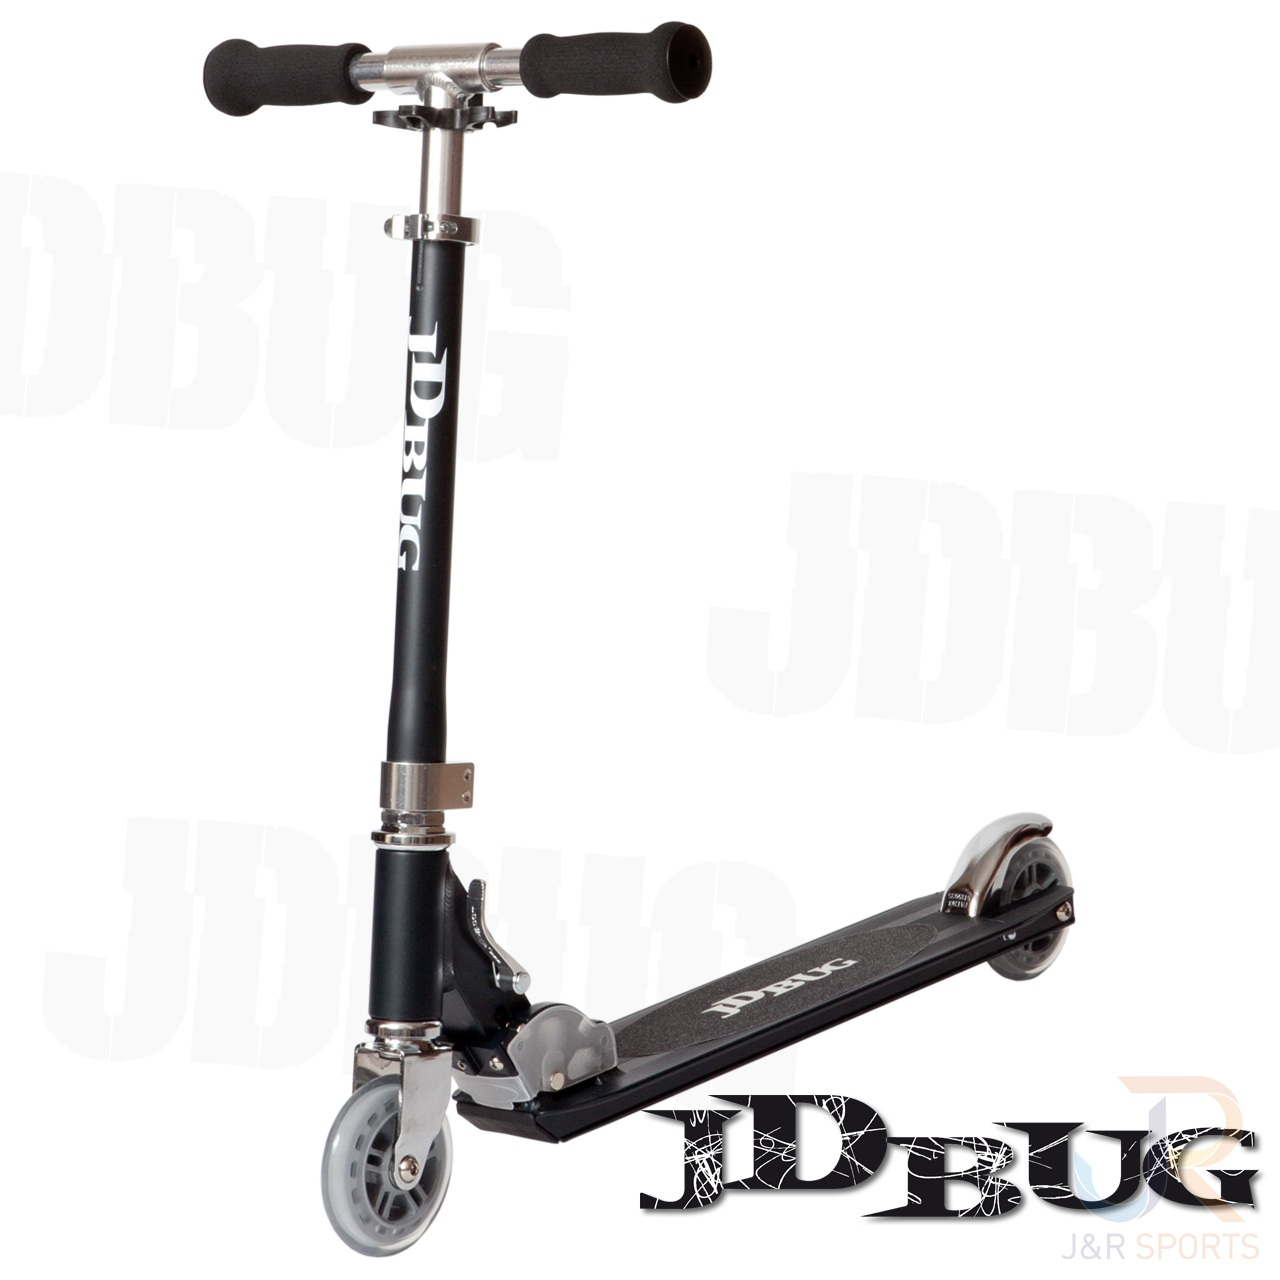 jd bug street black